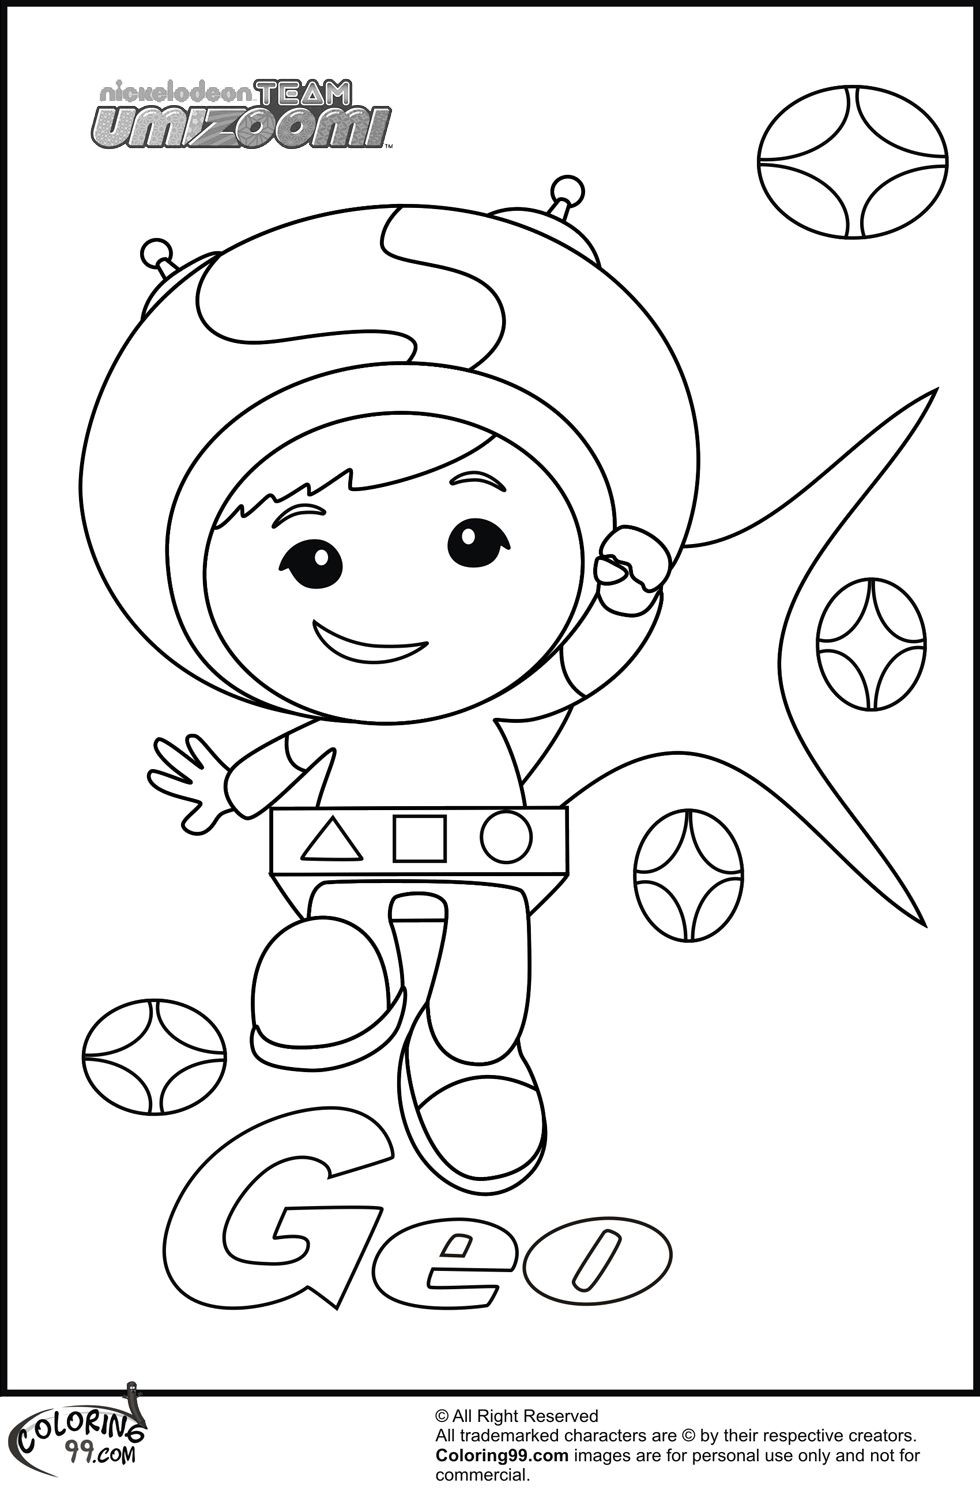 980x1500 Umizoomi Coloring Pages Free Best Of Team Umizoomi Coloring